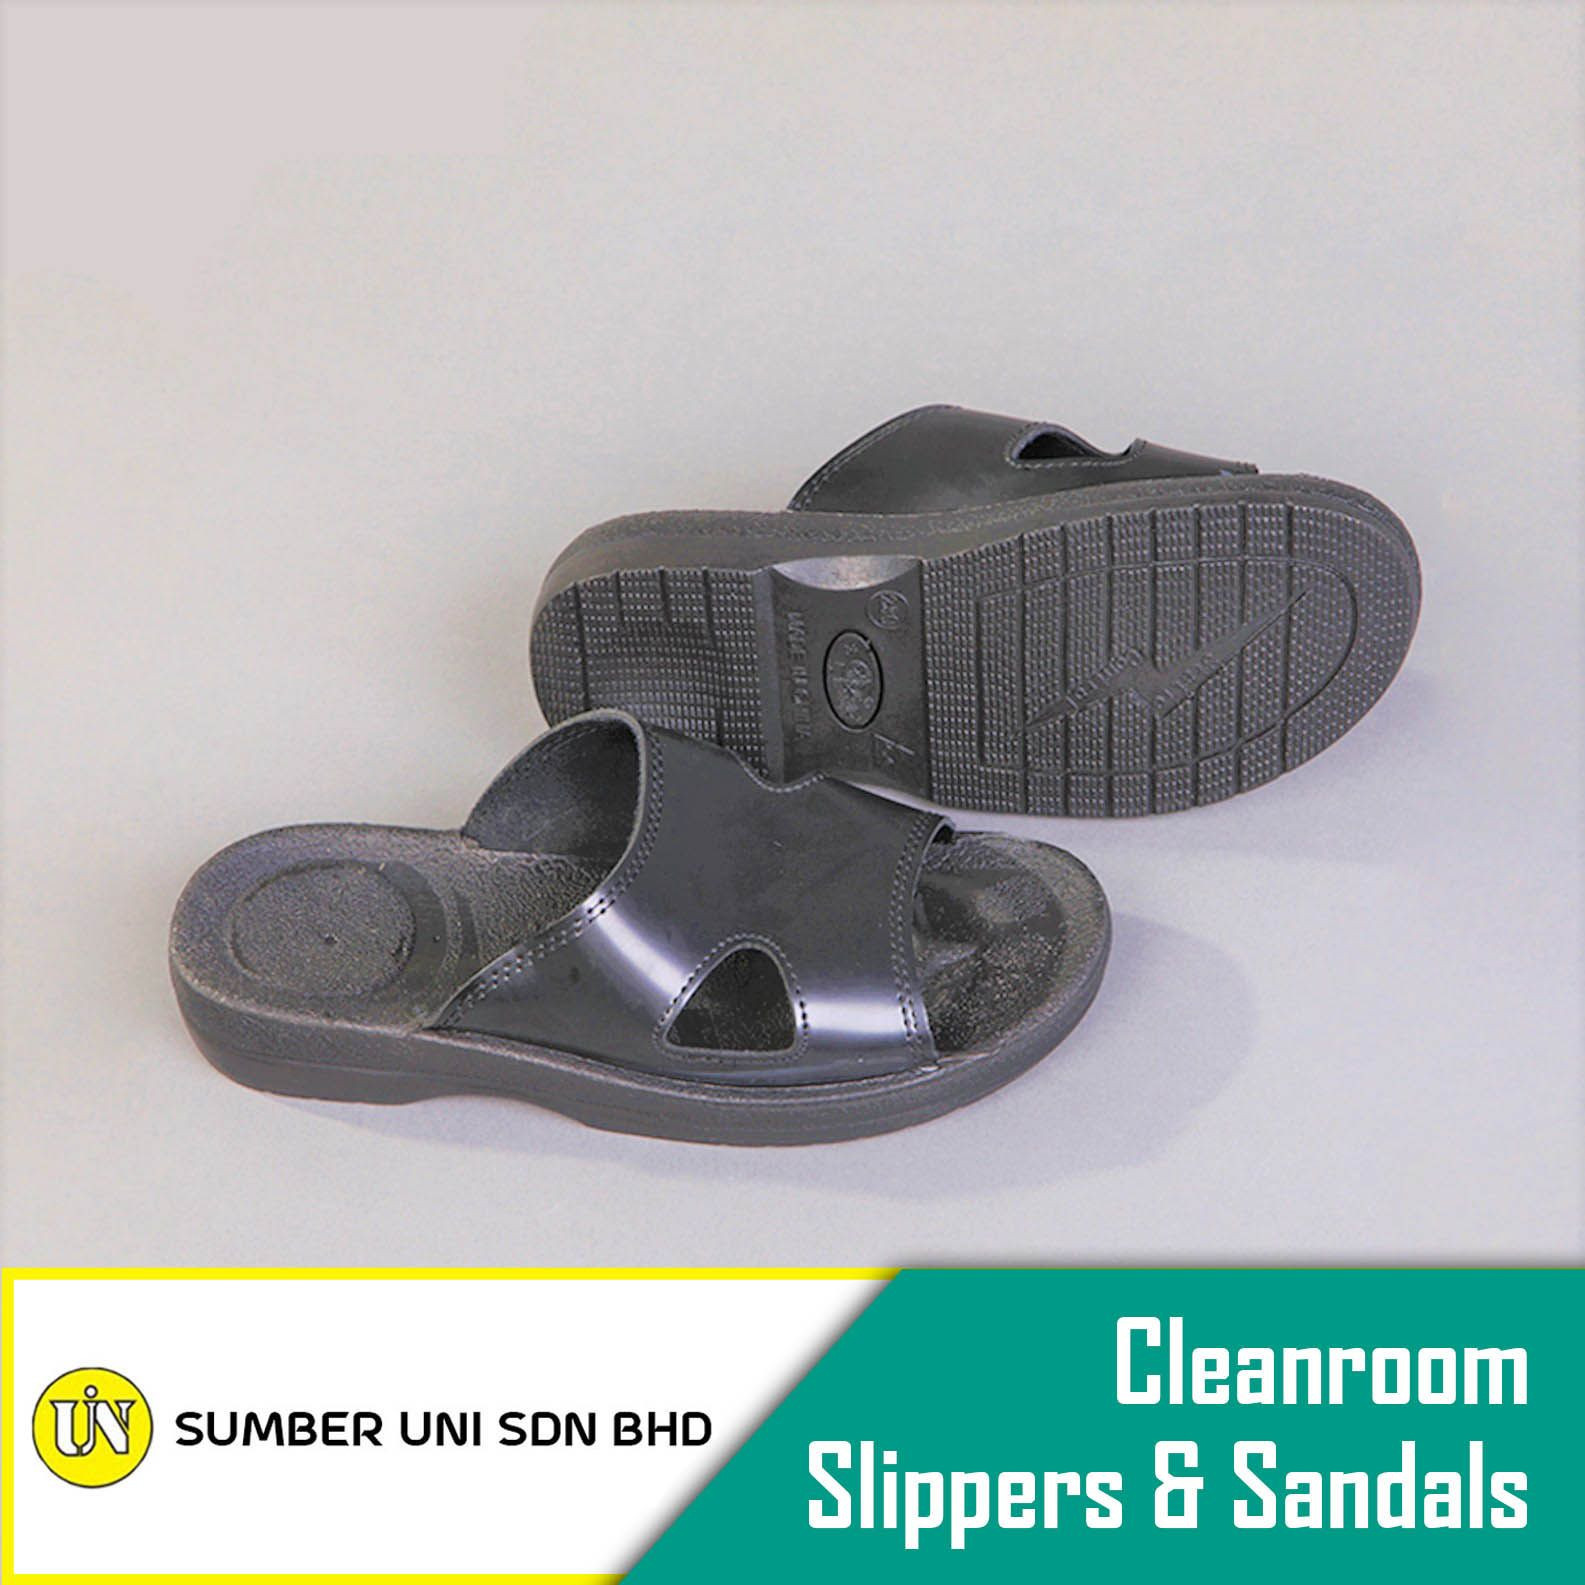 Cleanroom Slippers & Sandals